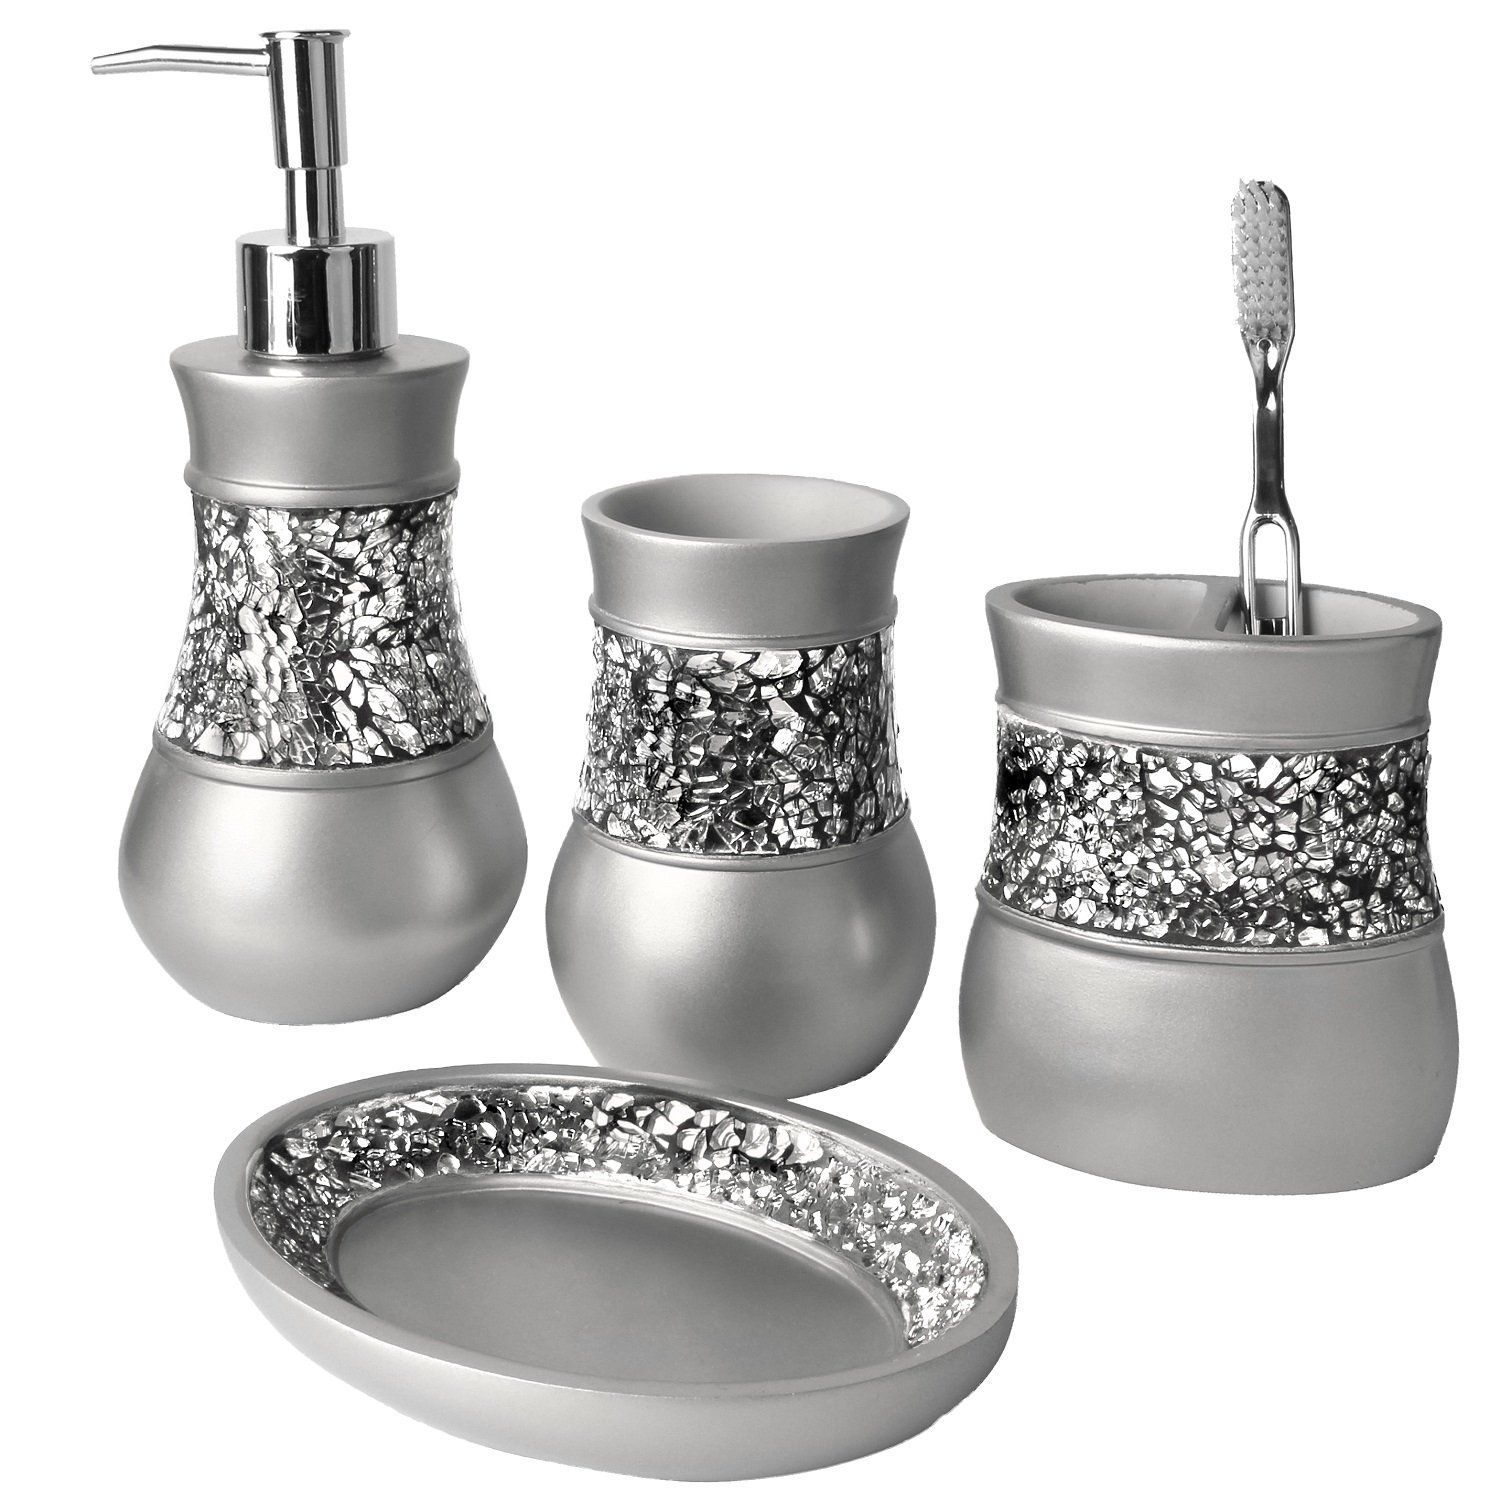 Creative Scents Brushed Nickel Bath Ensemble Piece Bathroom - Gray bathroom accessories set for bathroom decor ideas